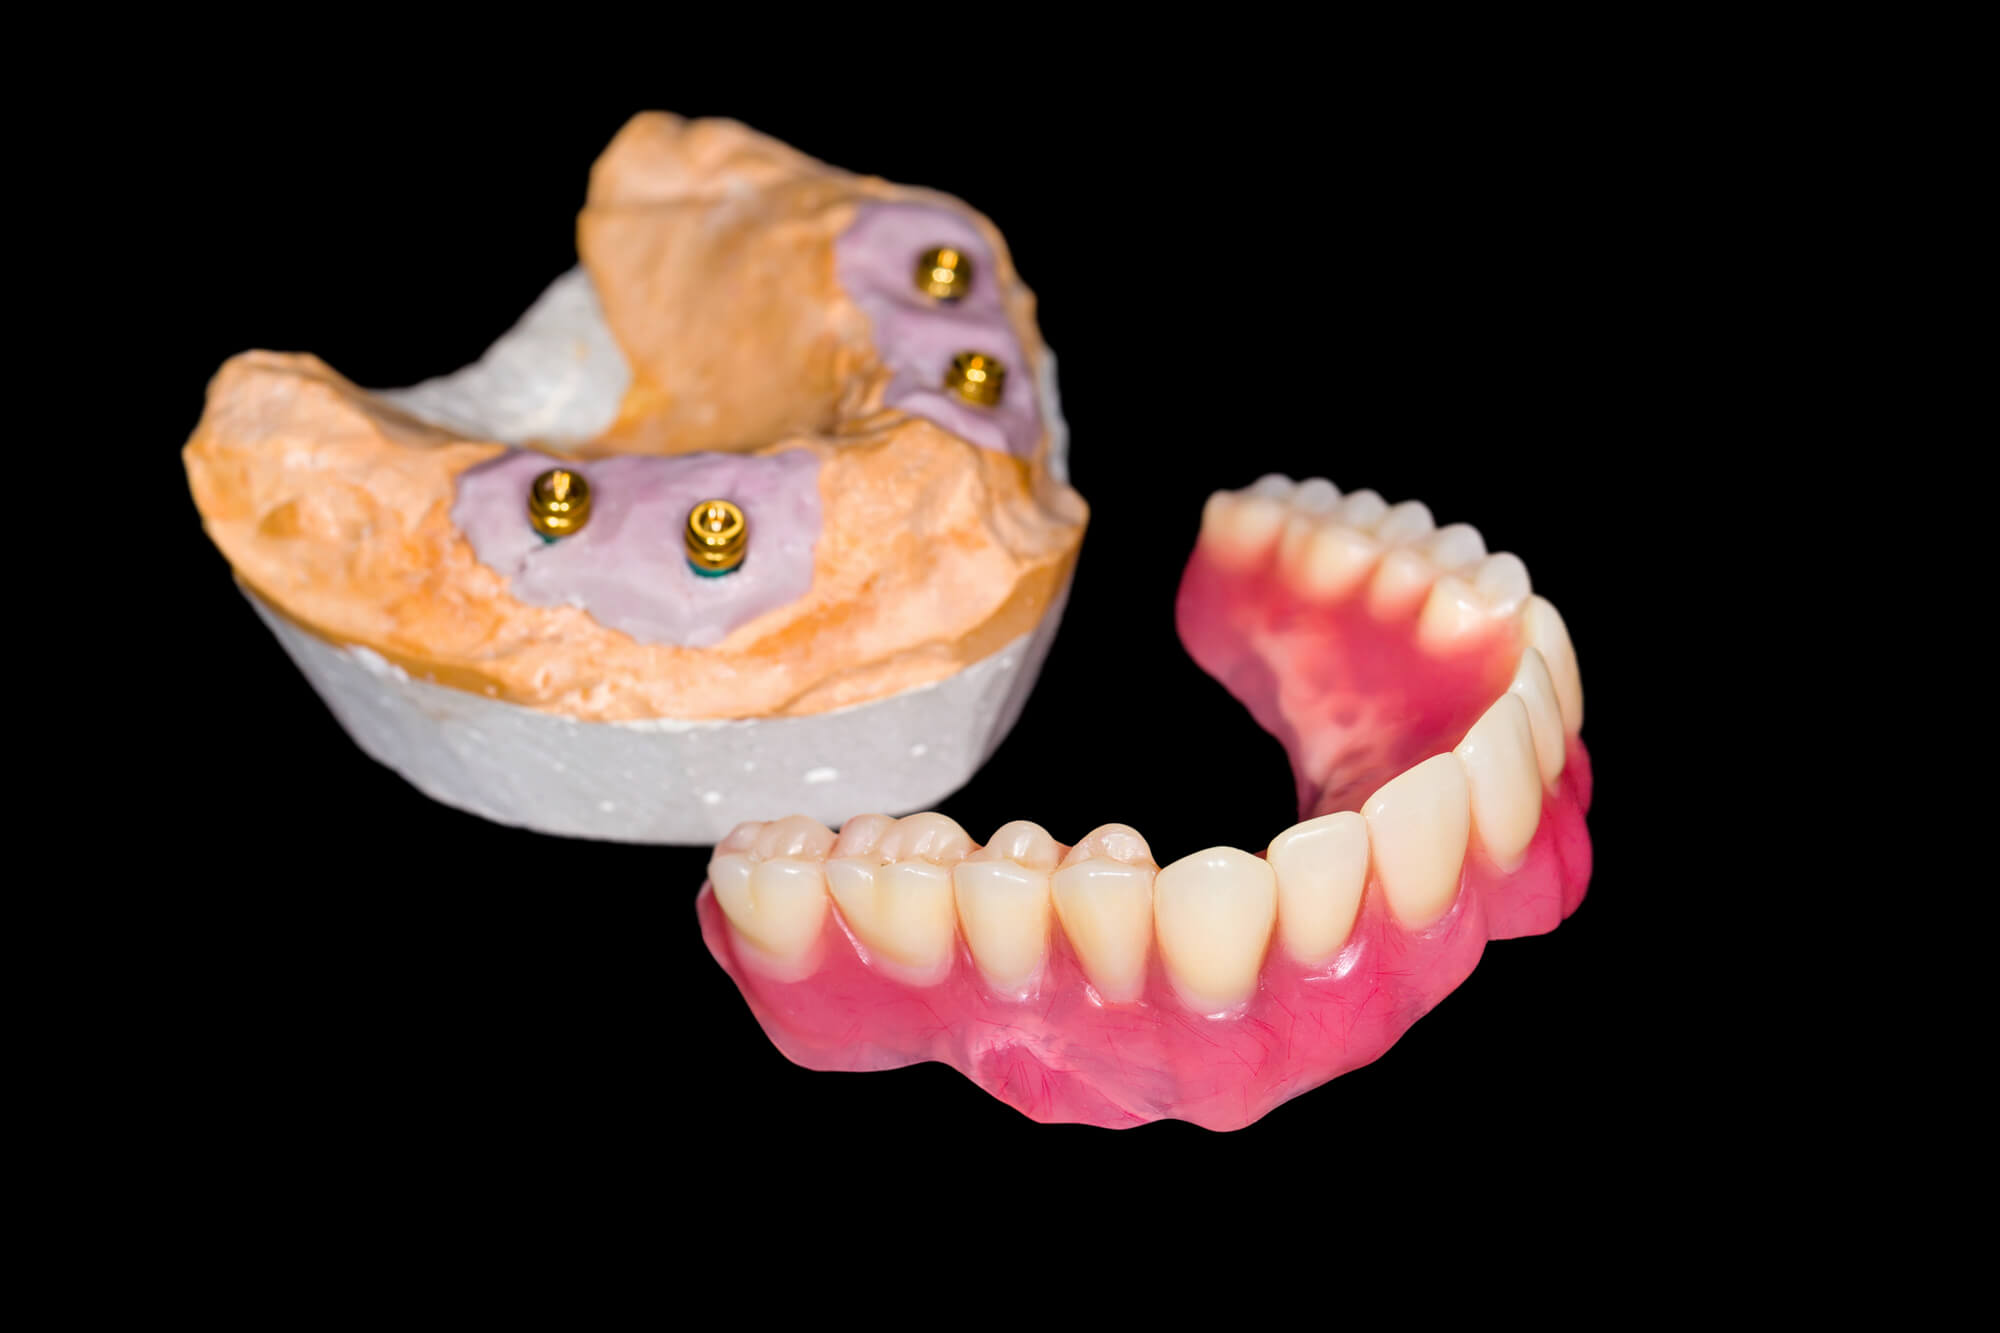 who offers the best dentures windermere?